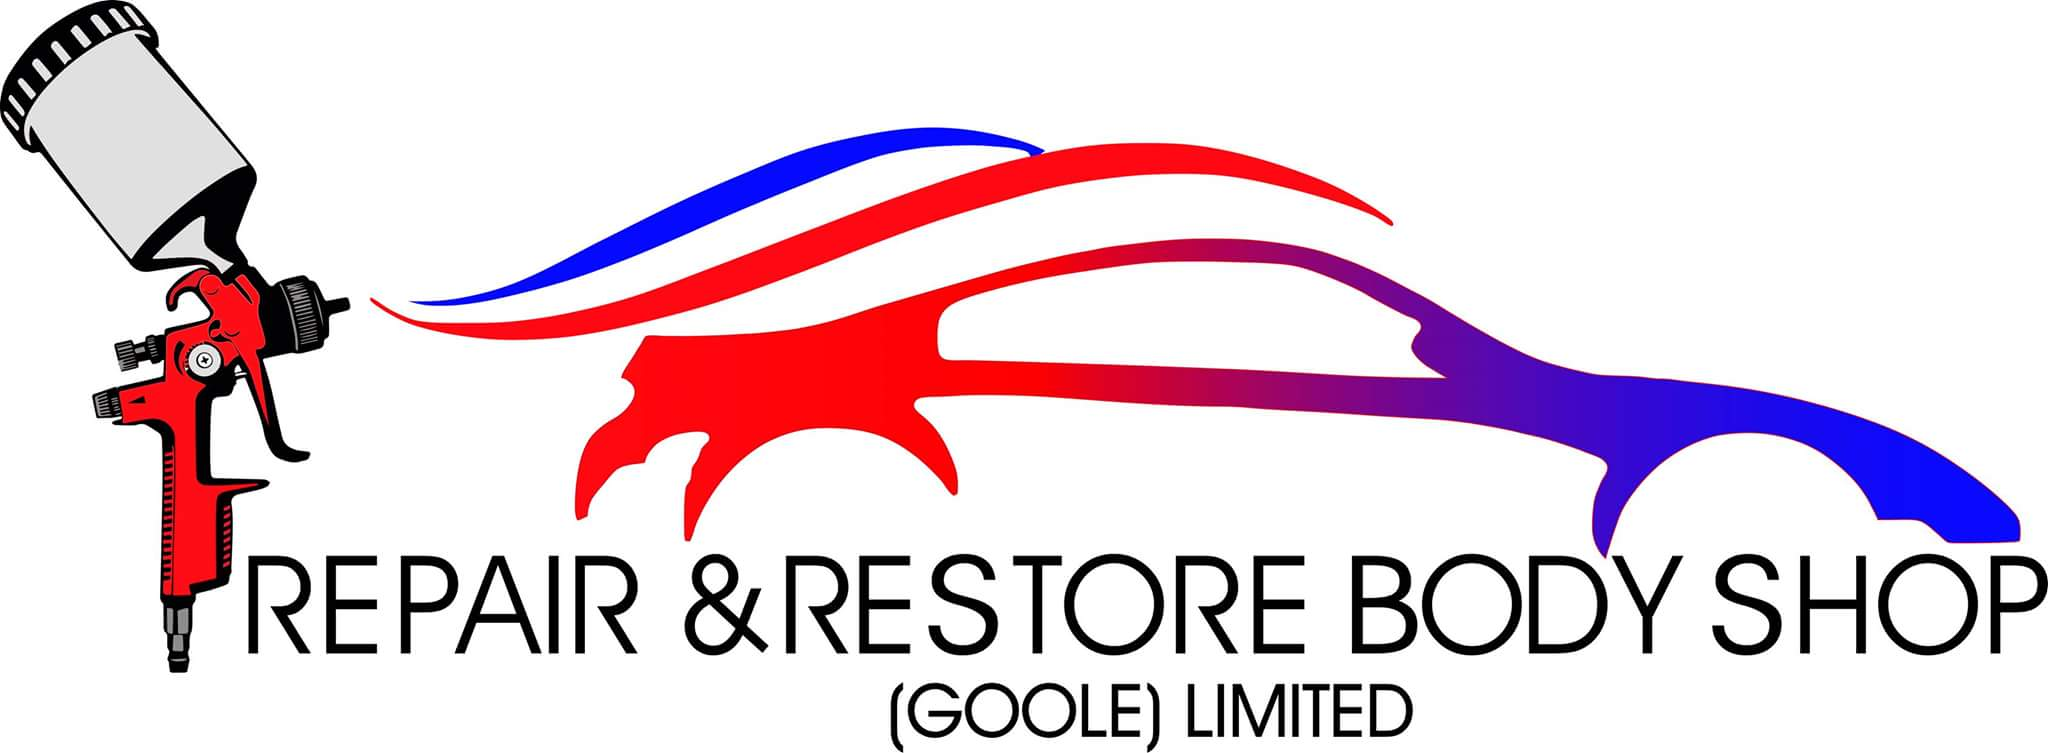 repair and restore body shop goole limited east yorkshire rh repairandrestorebodyshop co uk Paint and Body Shop Logo Kings Auto Body Shop Logos